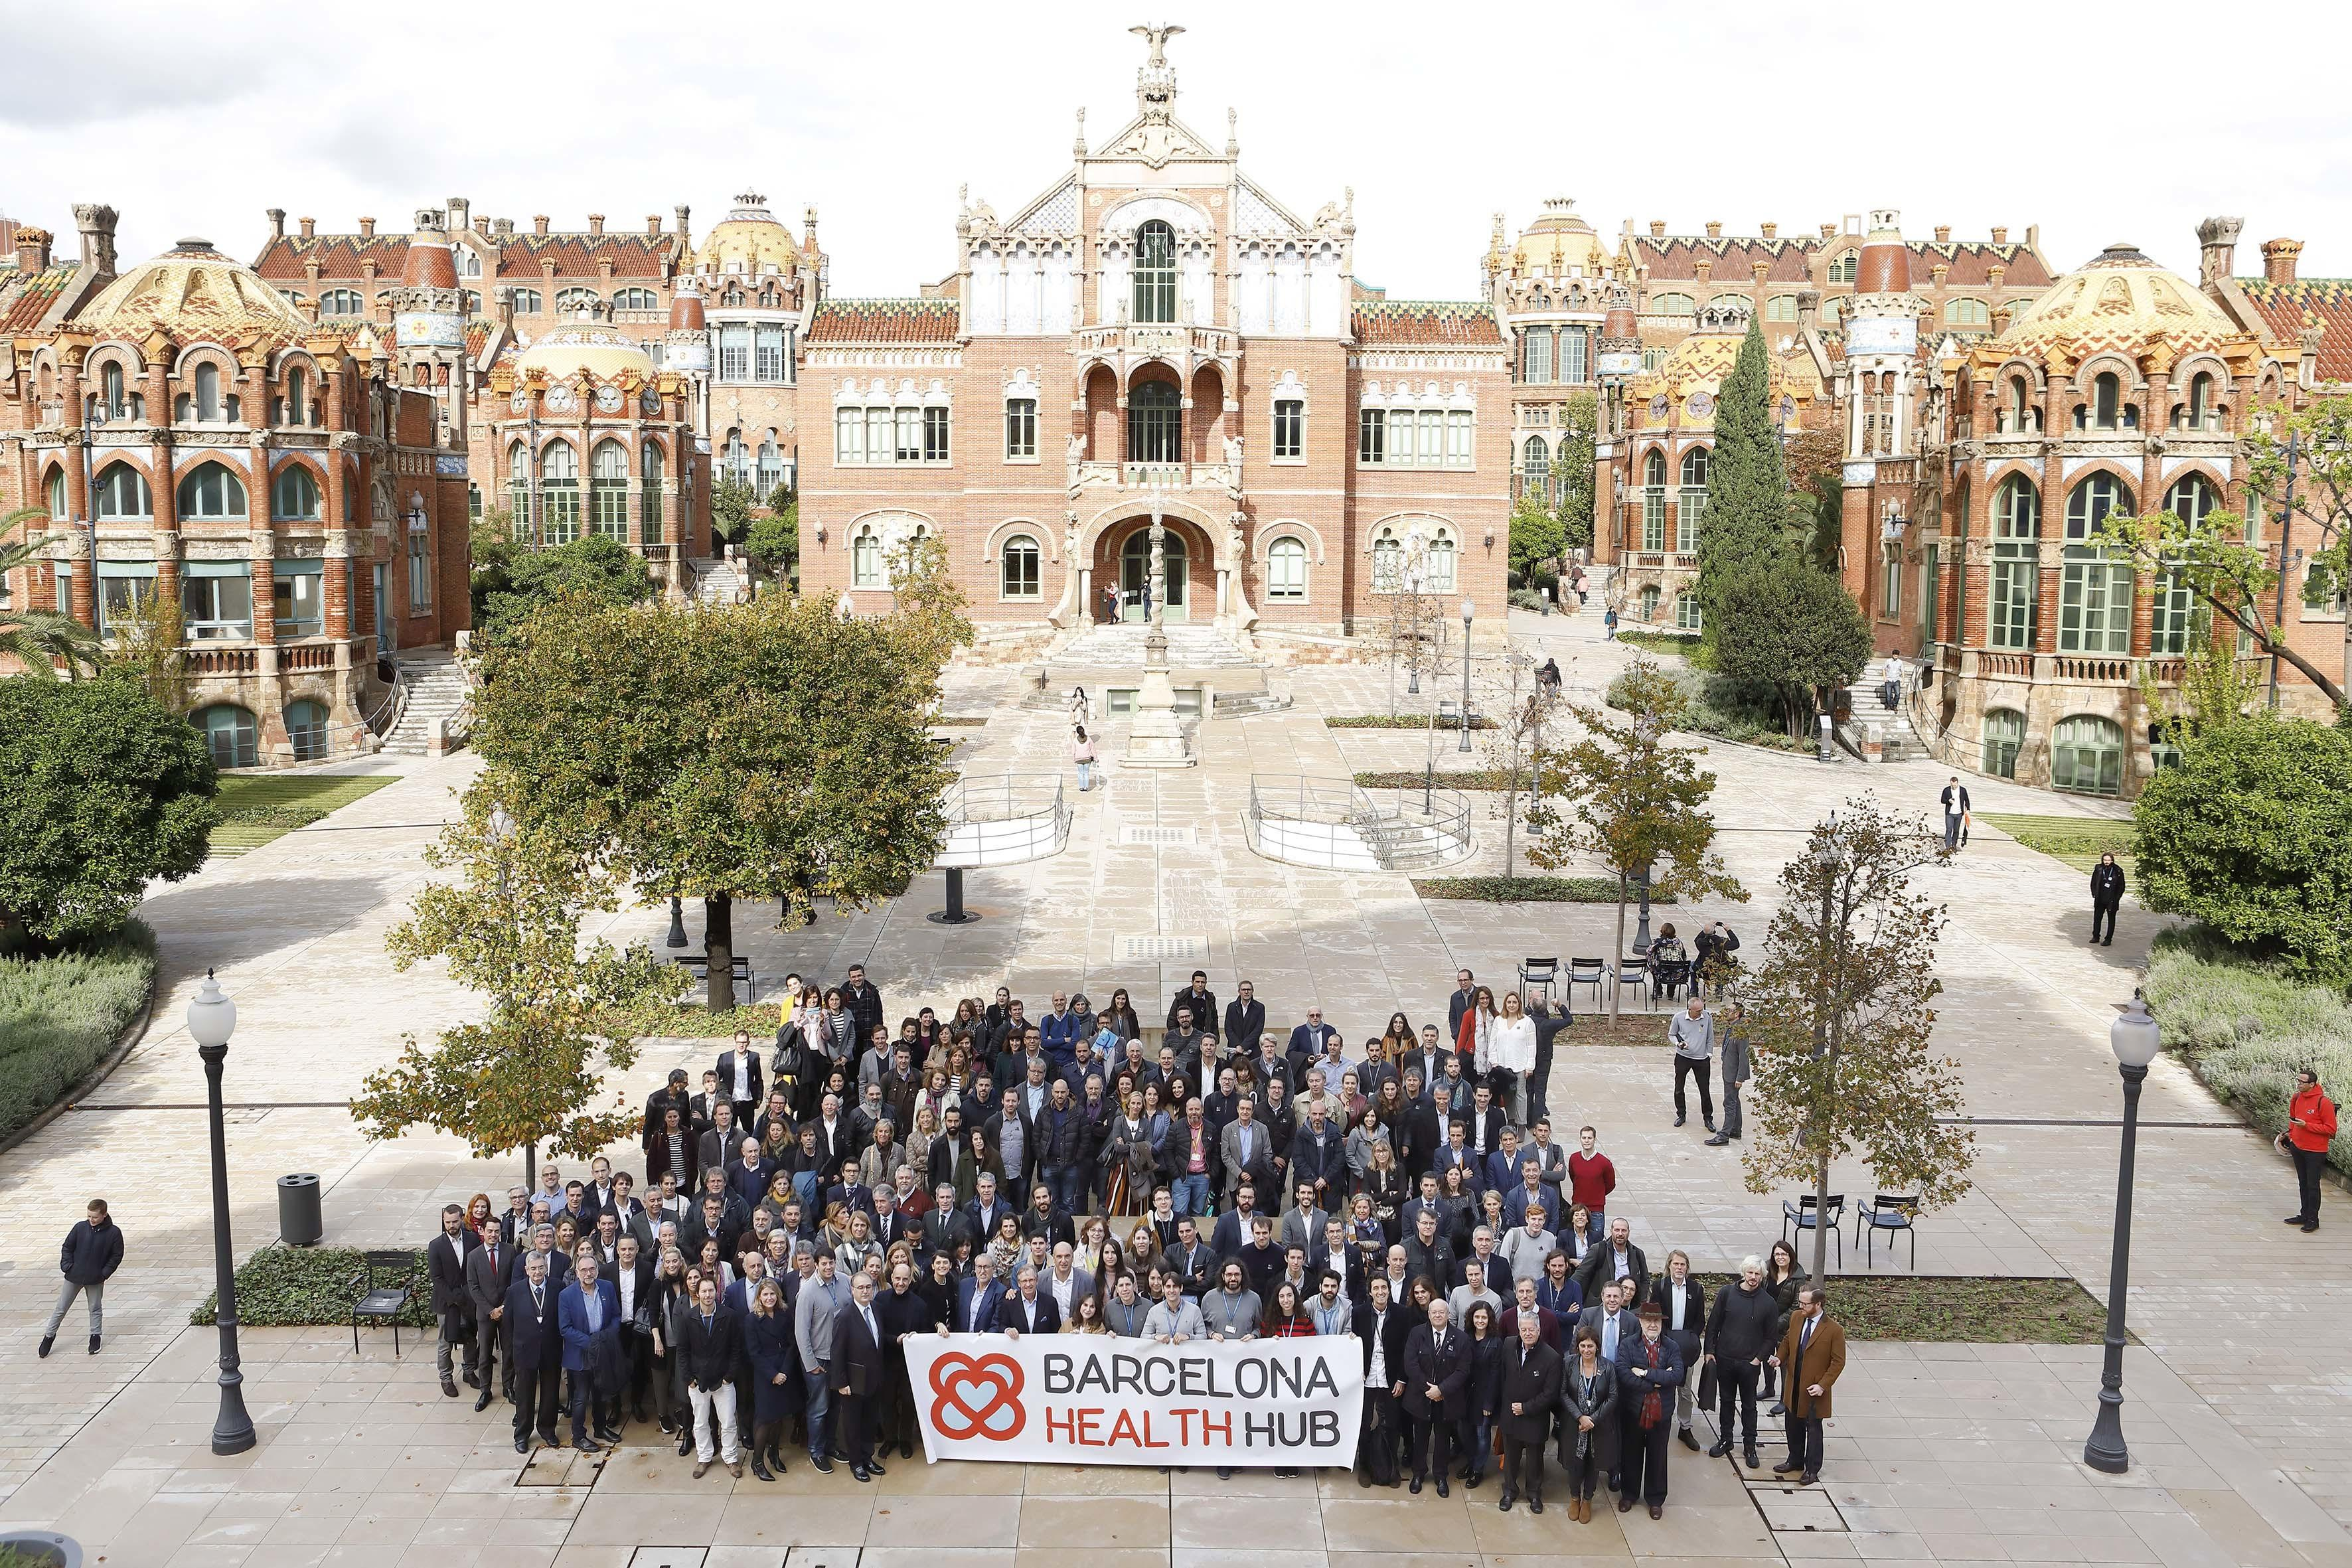 SUCCESS CASE: Why Barcelona Health Hub choose Daysk to build a thriving ecosystem of start-ups and corporates located in the emblematic modernist Recinte San Pau.